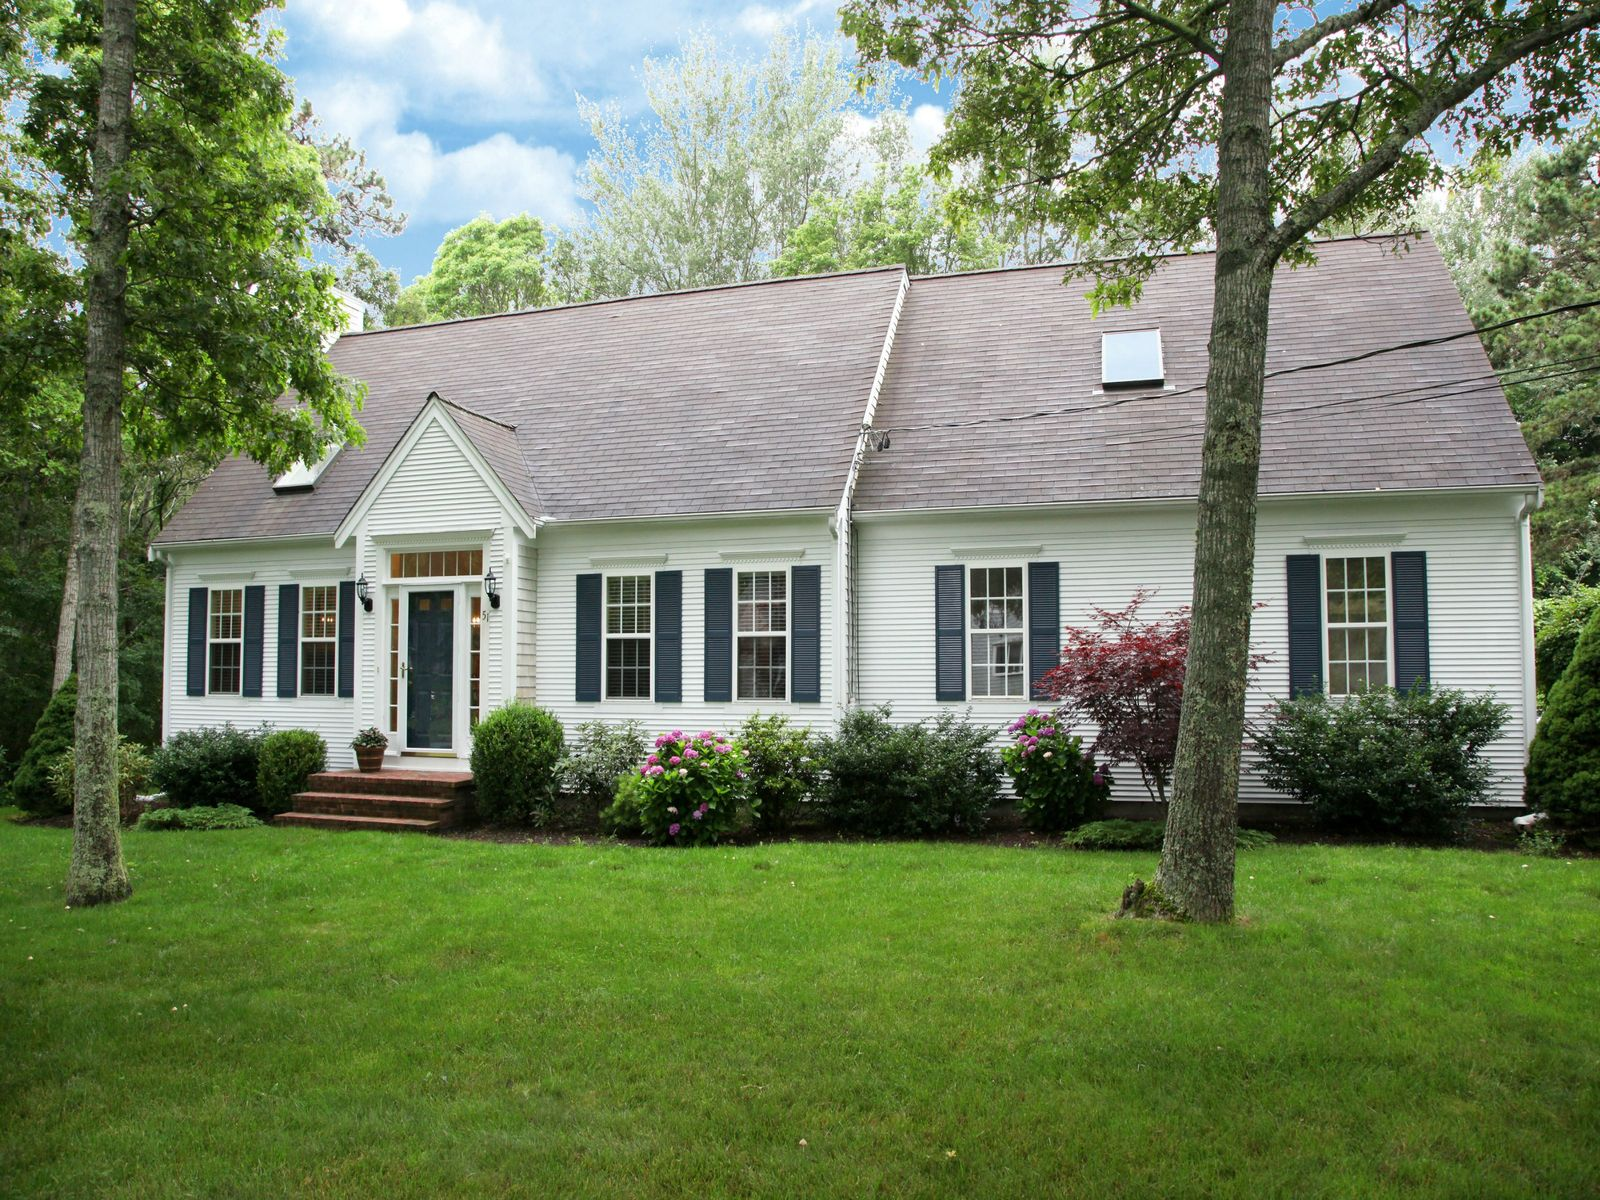 Charming cape cod style home west hyannisport ma single for Cape cod beach homes for sale